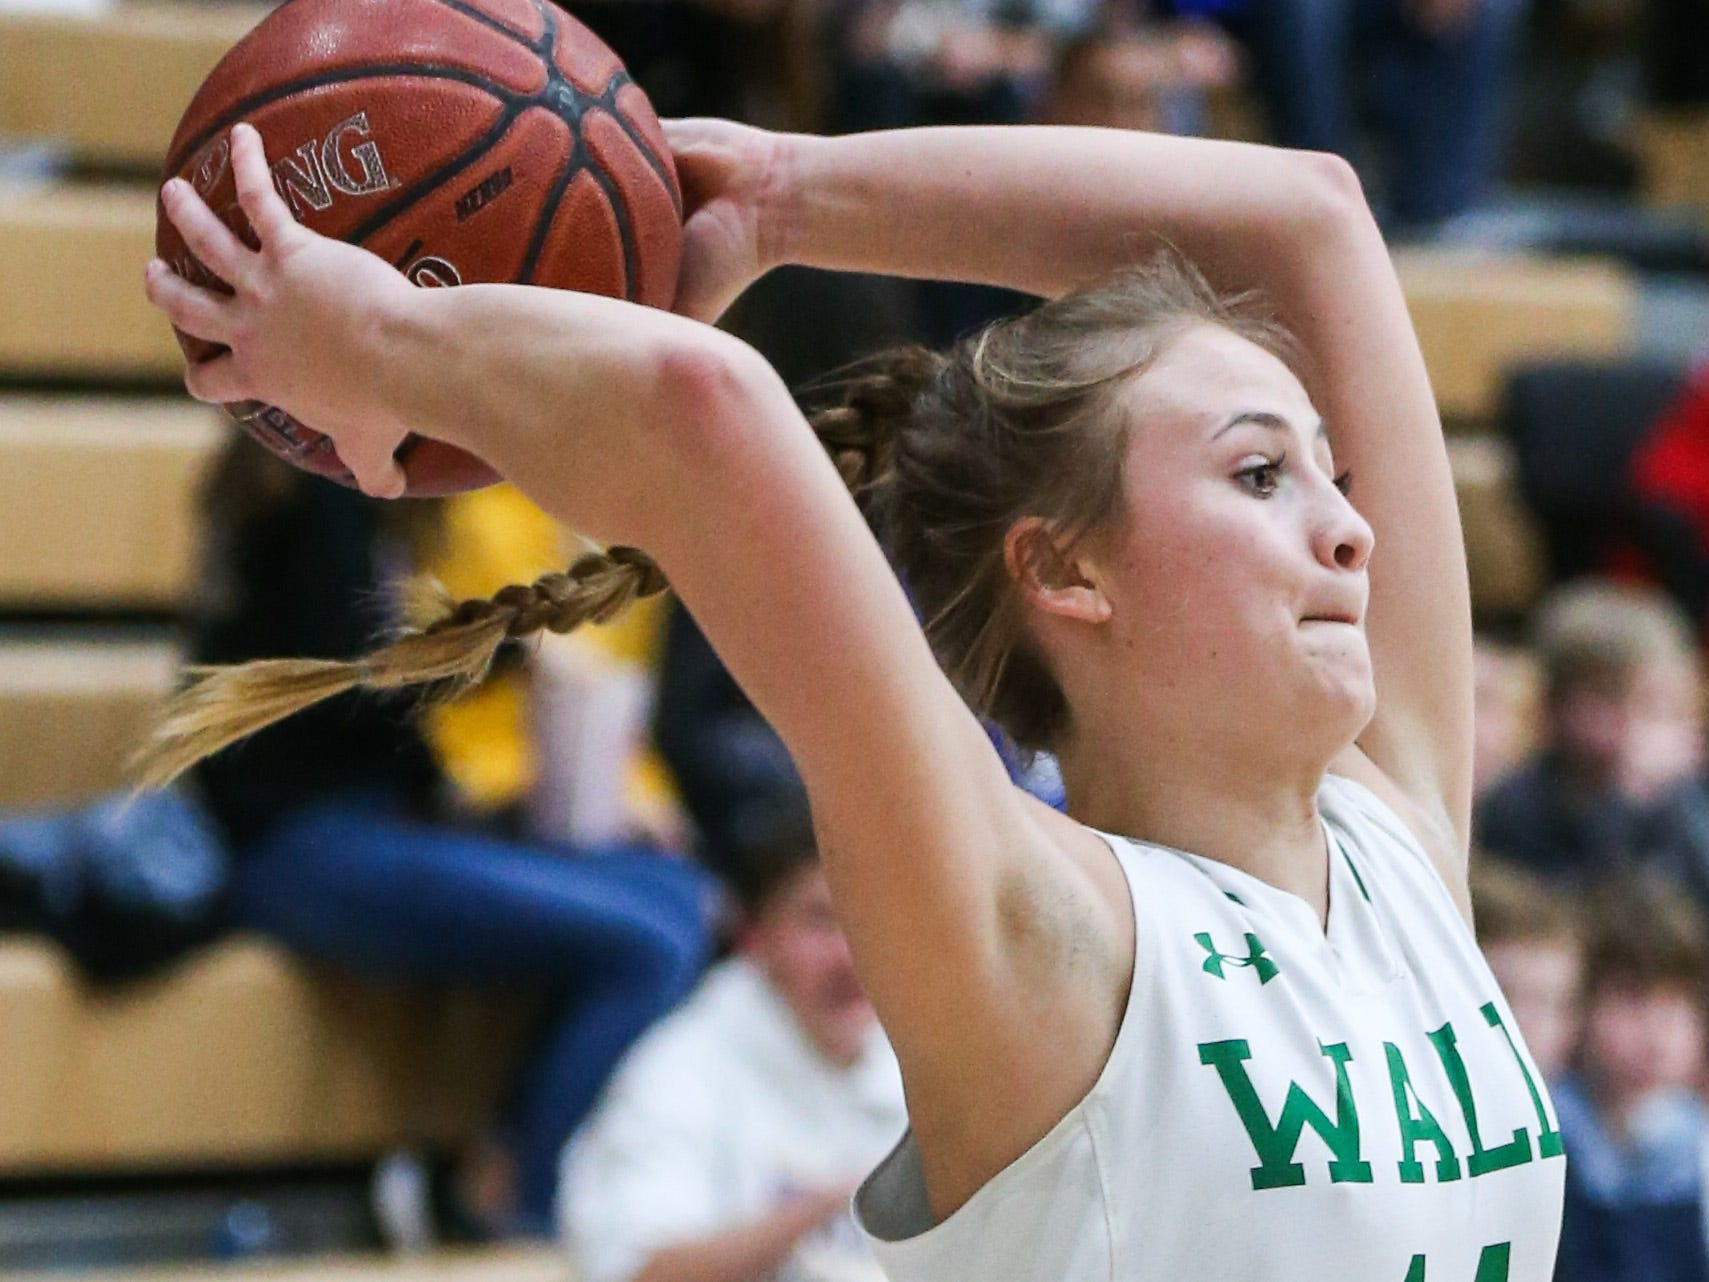 Wall's Payton Box passes the ball during the 1-3A regional tournament against Brock Friday, Feb. 22, 2019, at Wayland Baptist University in Plainview.